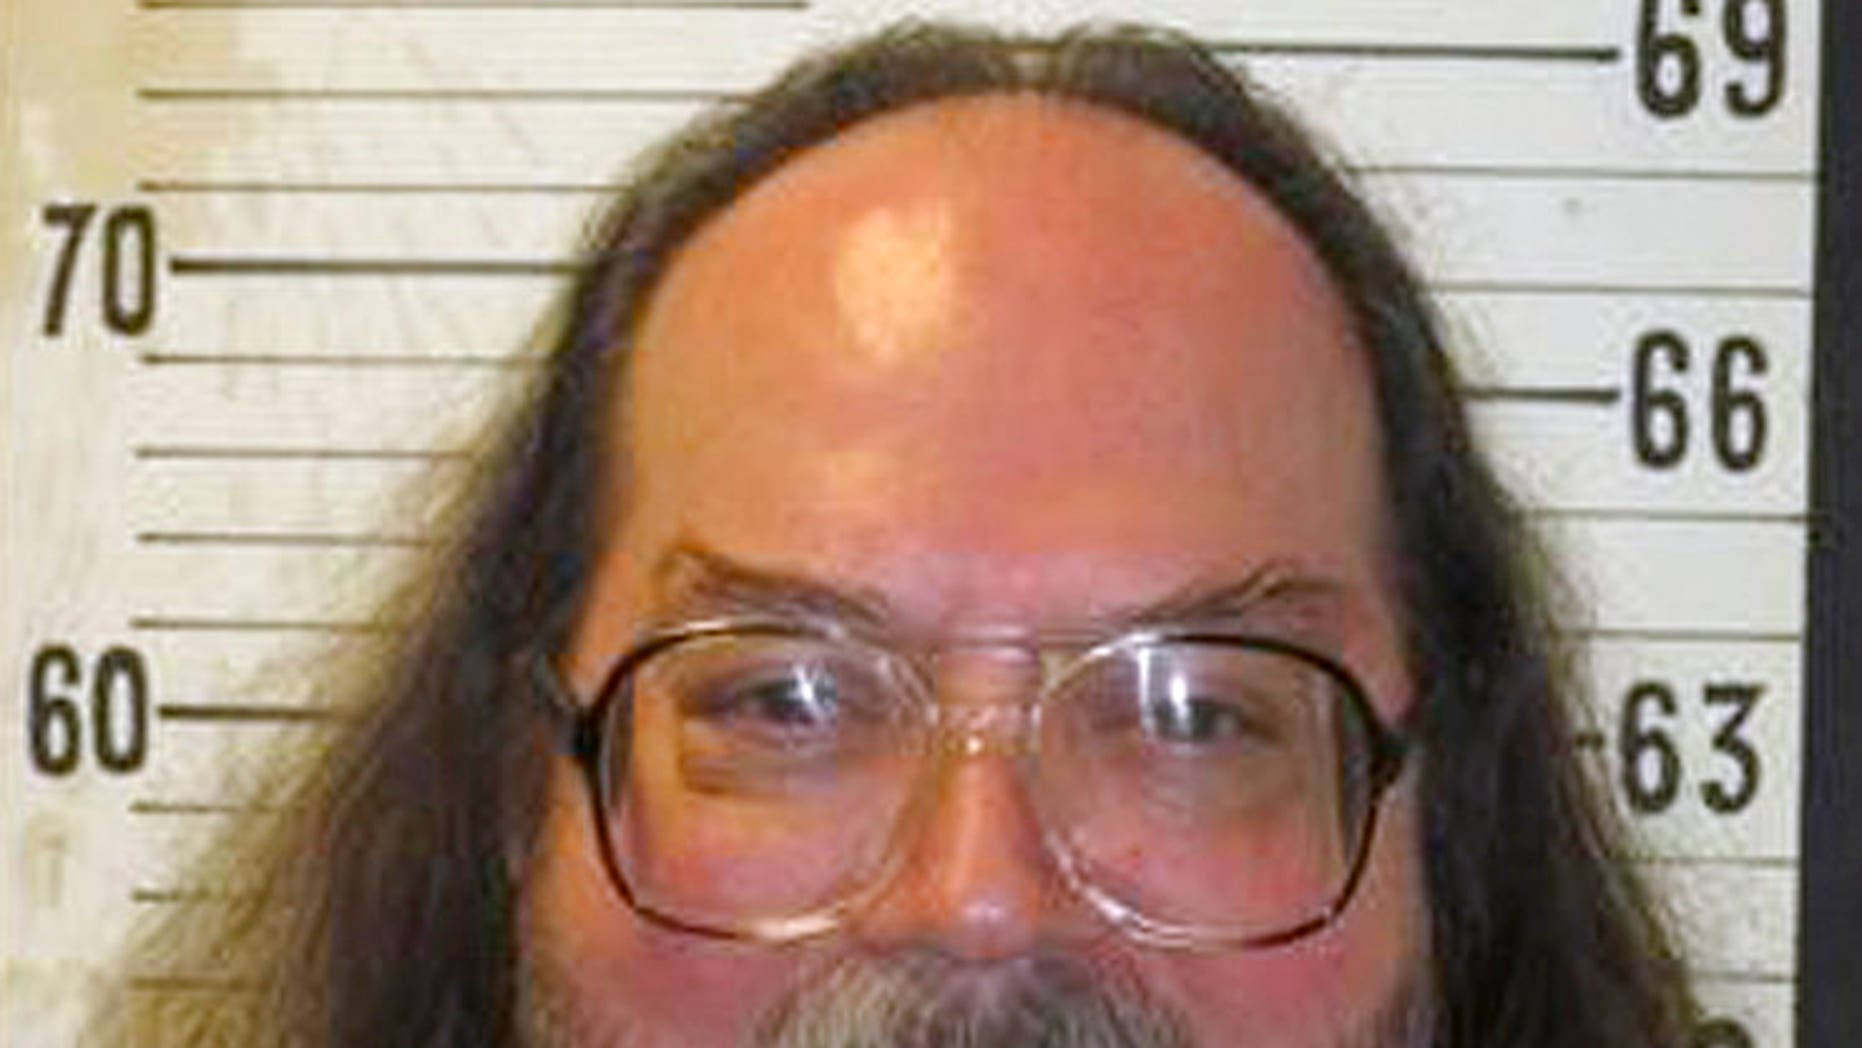 Billy Ray Irick, currently on death row at Riverbend Maximum Security Institution in Nashville, Tenn.